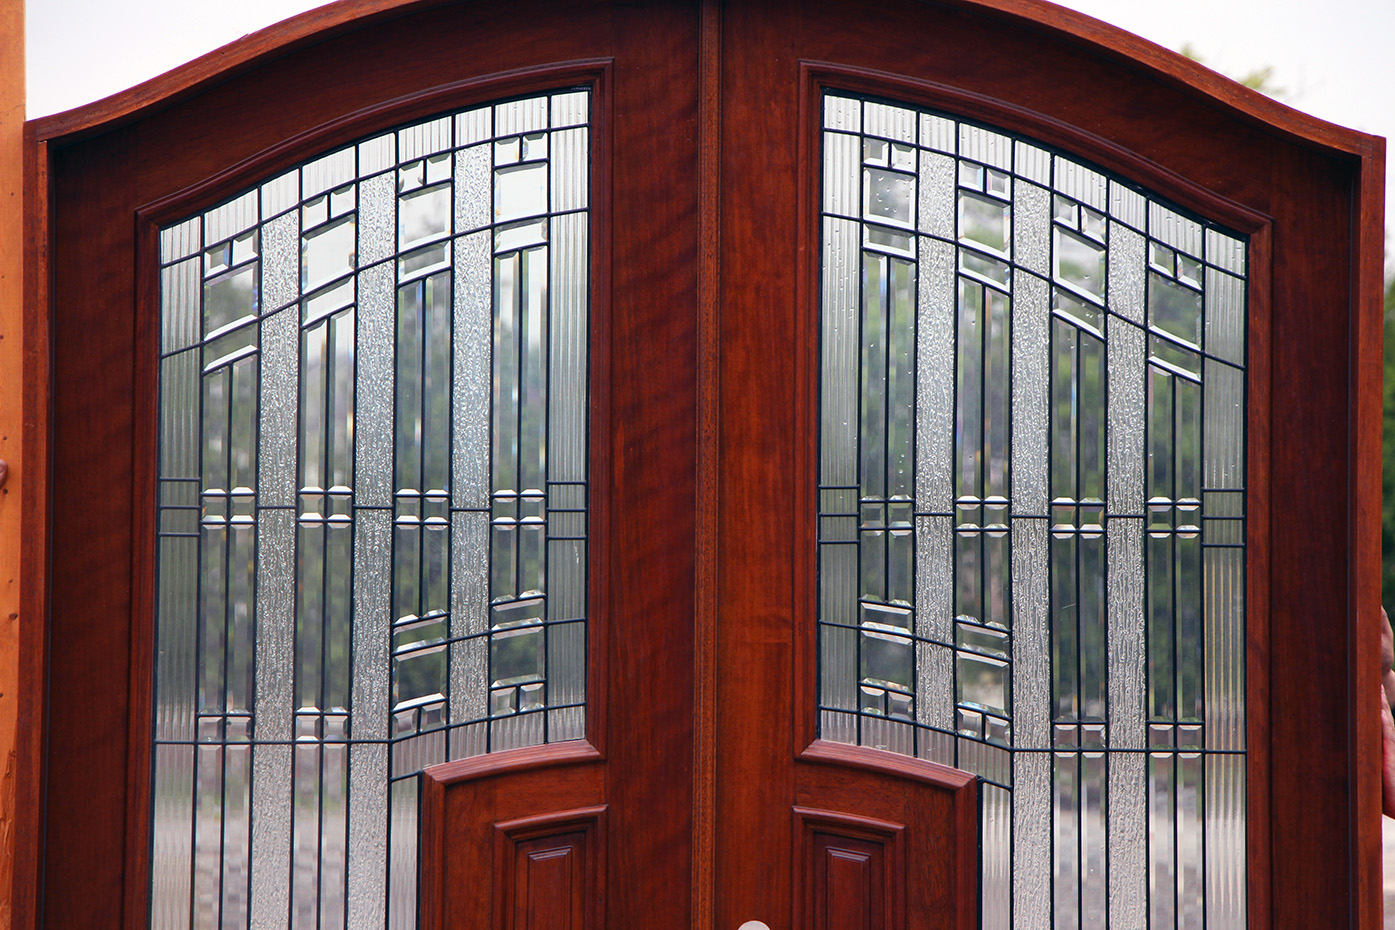 930 #6A241A African Mahogany Arched Top Double Doors image Arched Wood Entry Doors 40831395